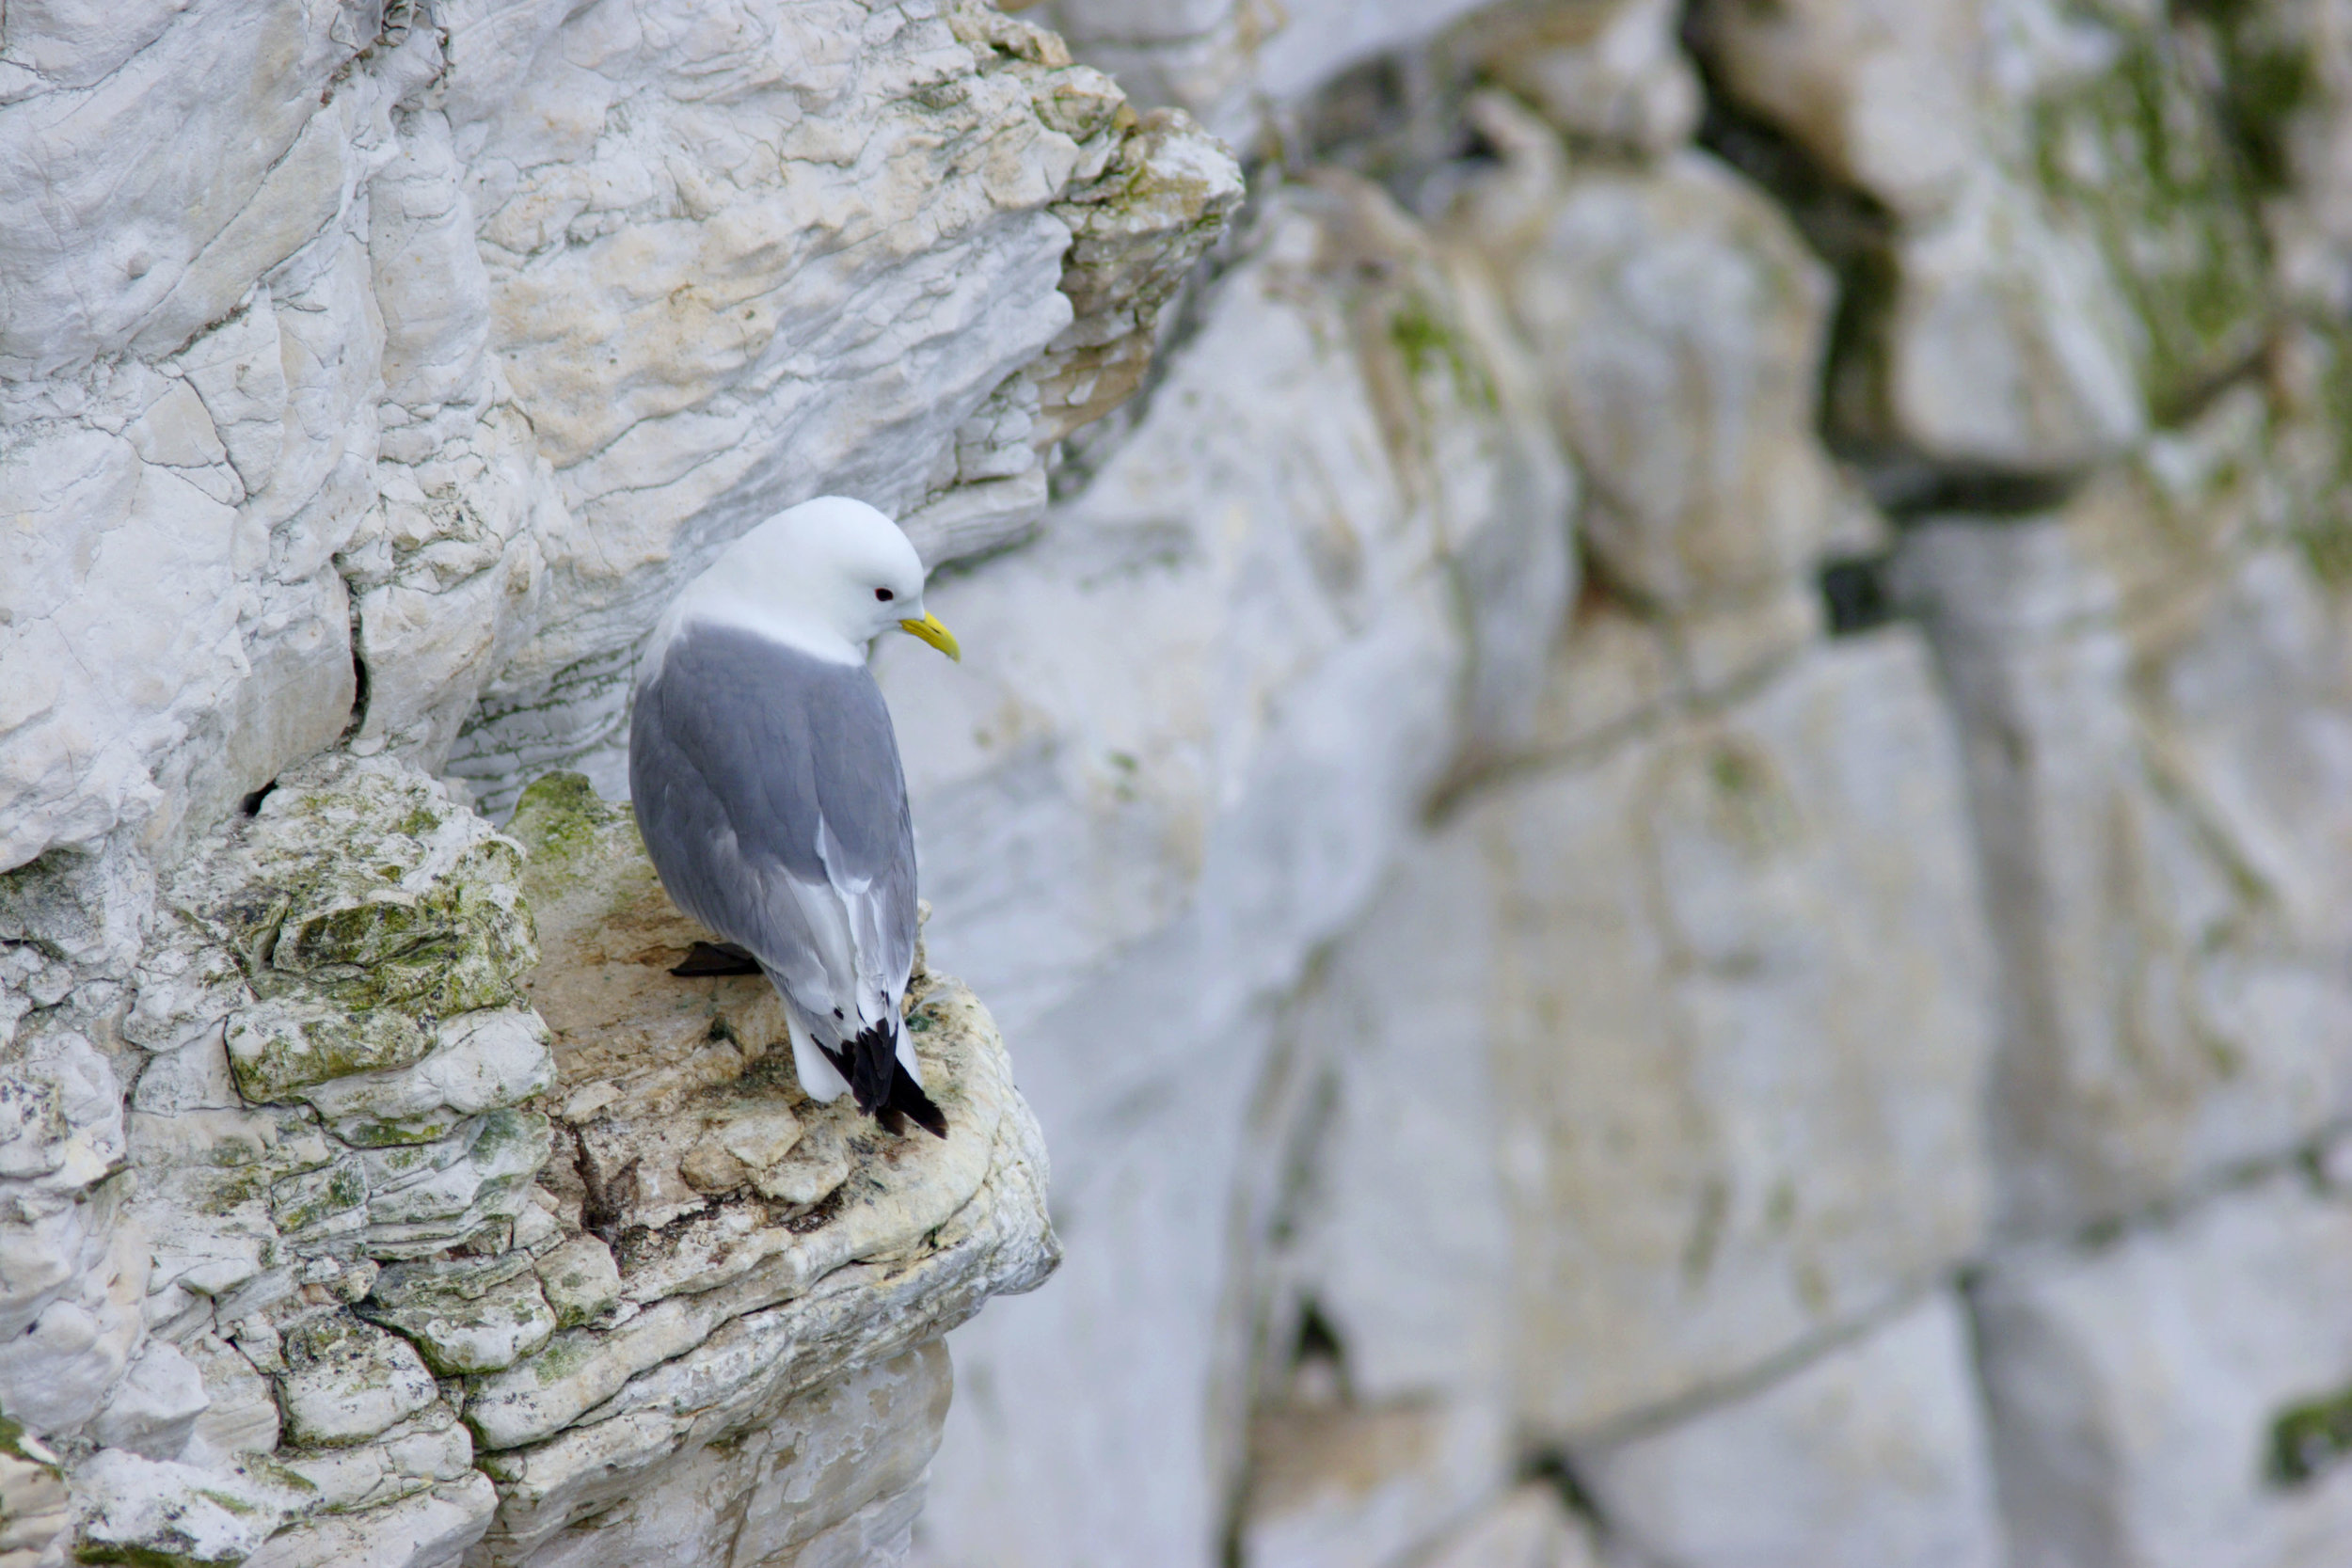 Adult Kittiwake